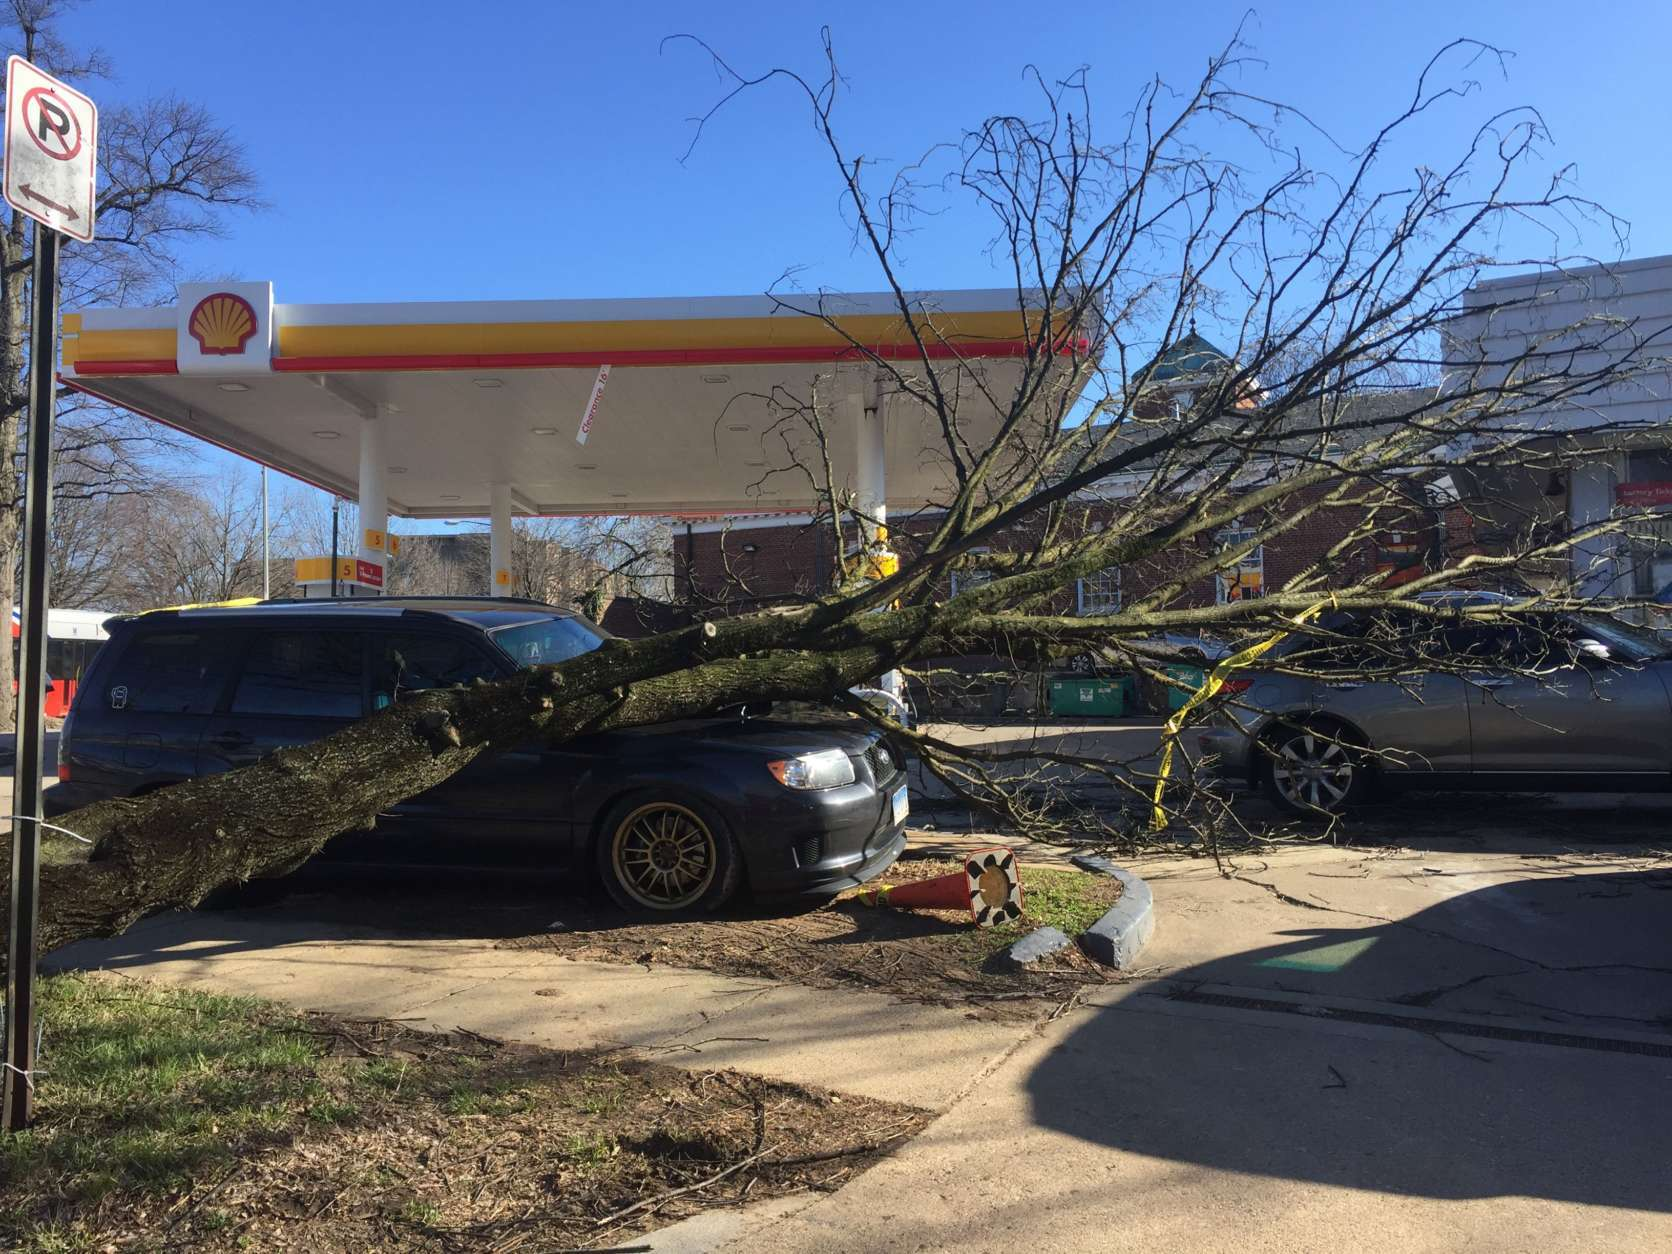 A tree falls near a gas station in Northwest D.C., following blustery winds in the area over the weekend. (Courtesy Christine Evans)